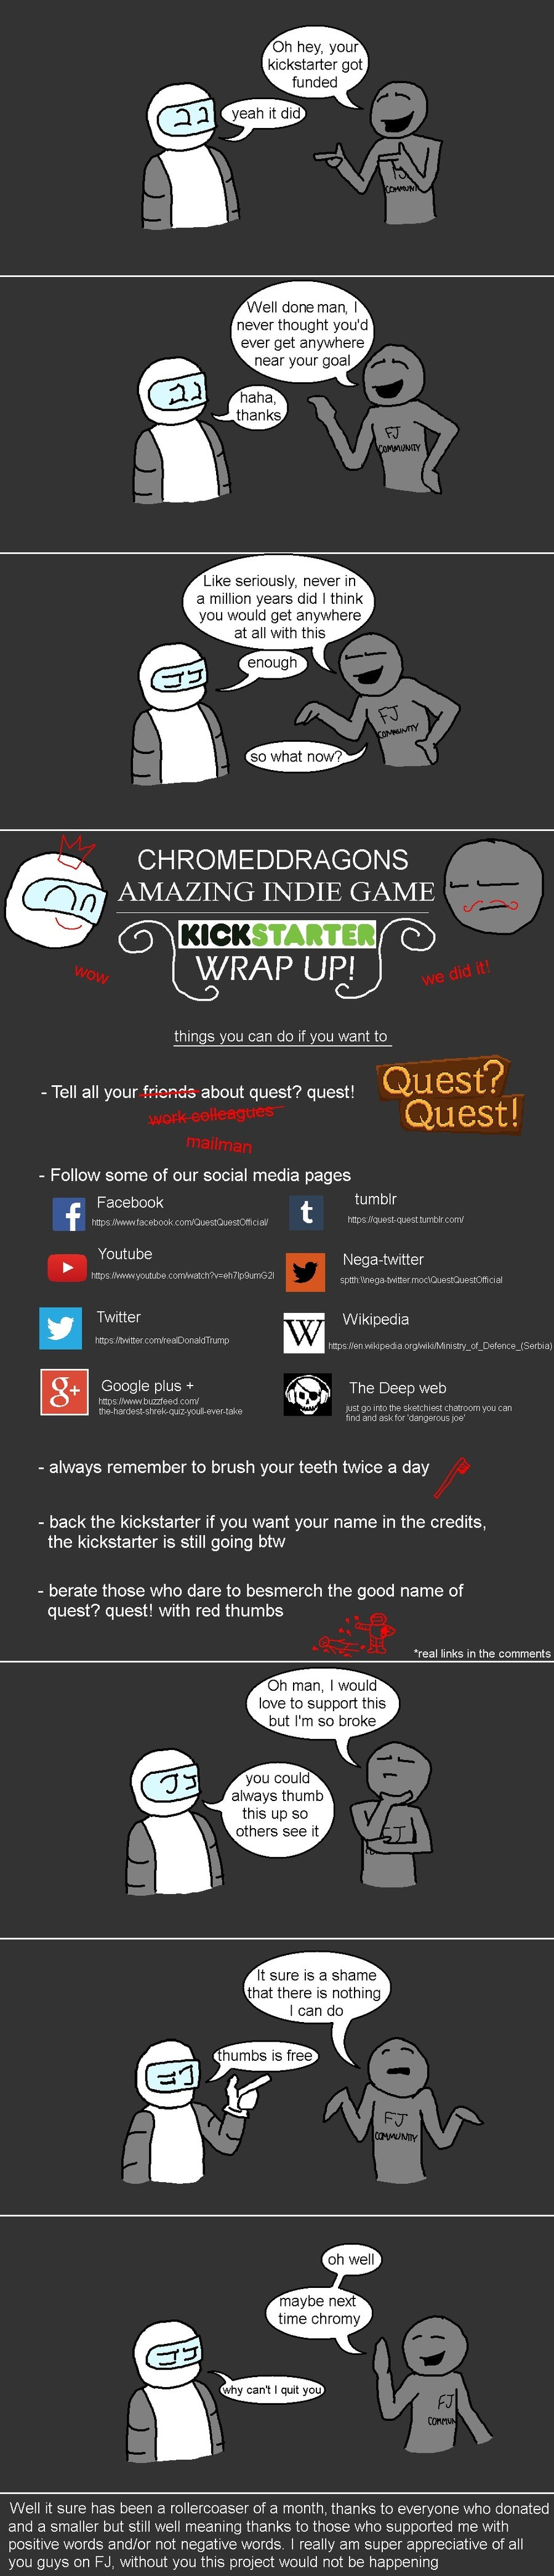 Quest? Quest! got its money. sorry if you just saw this, FJ thought it would be funny to remove my posts from trending one last time have a bonus meme join list